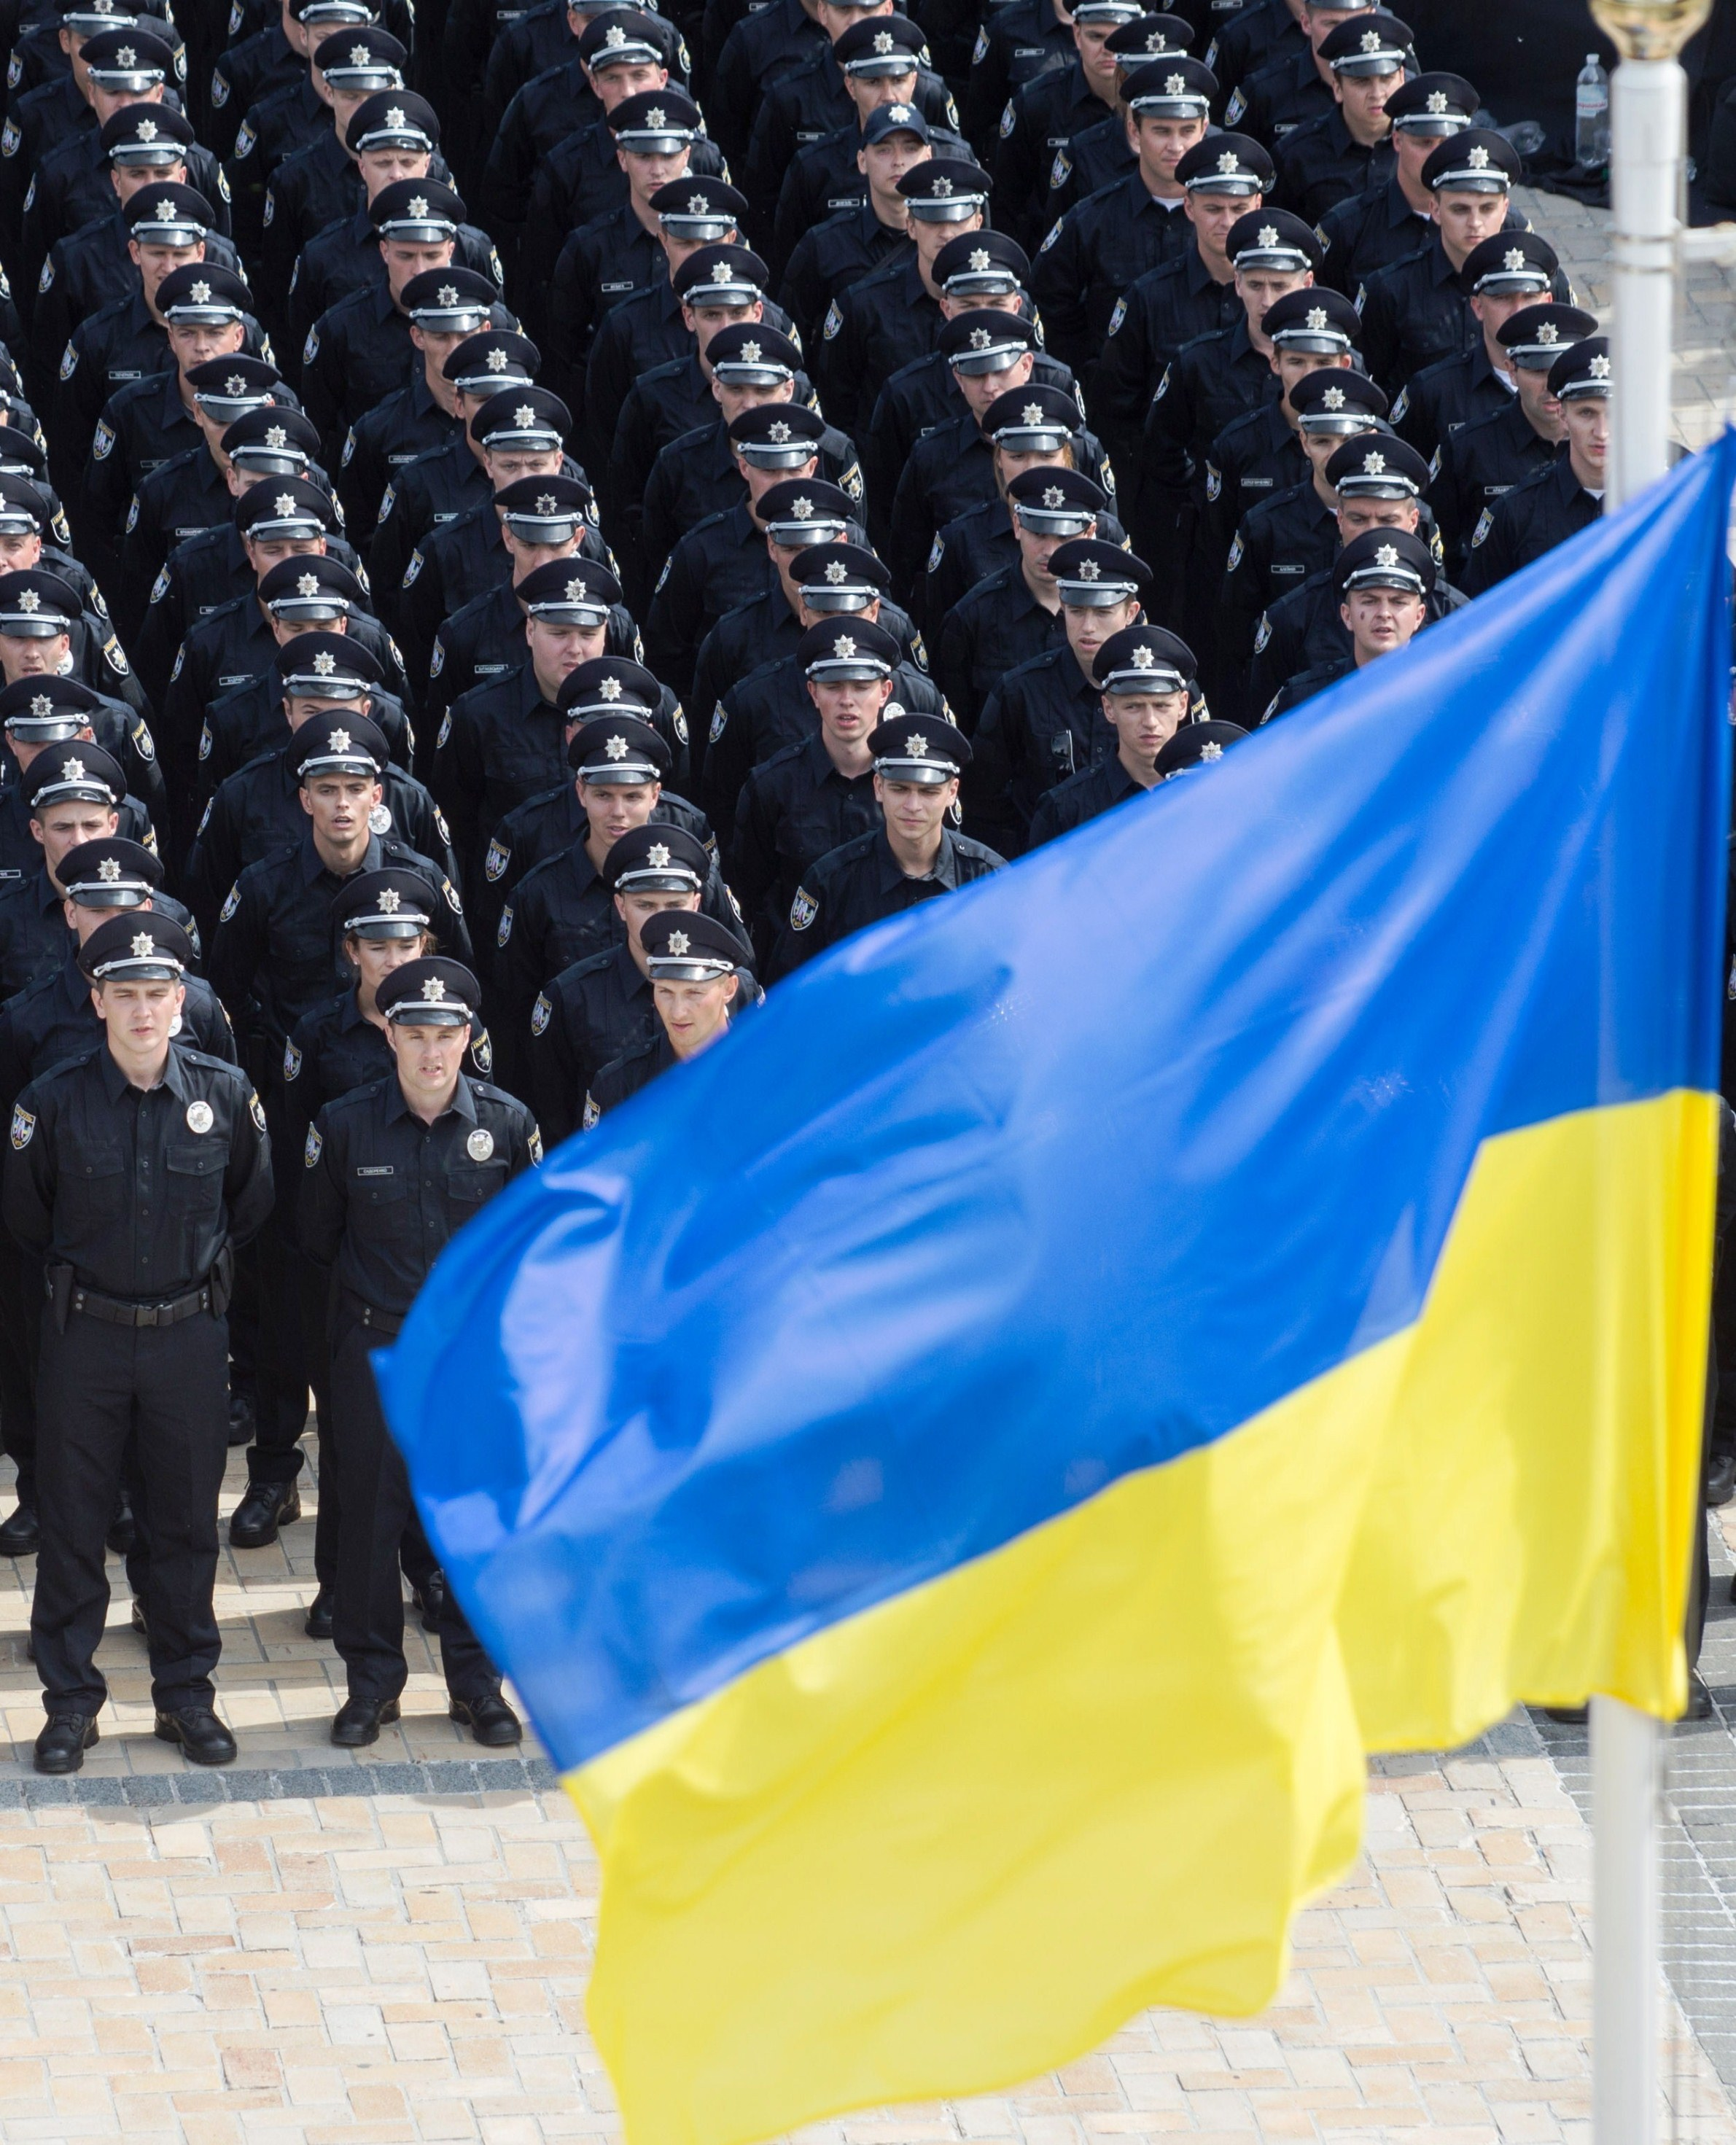 Ukraine launches police patrol on Kyiv streets